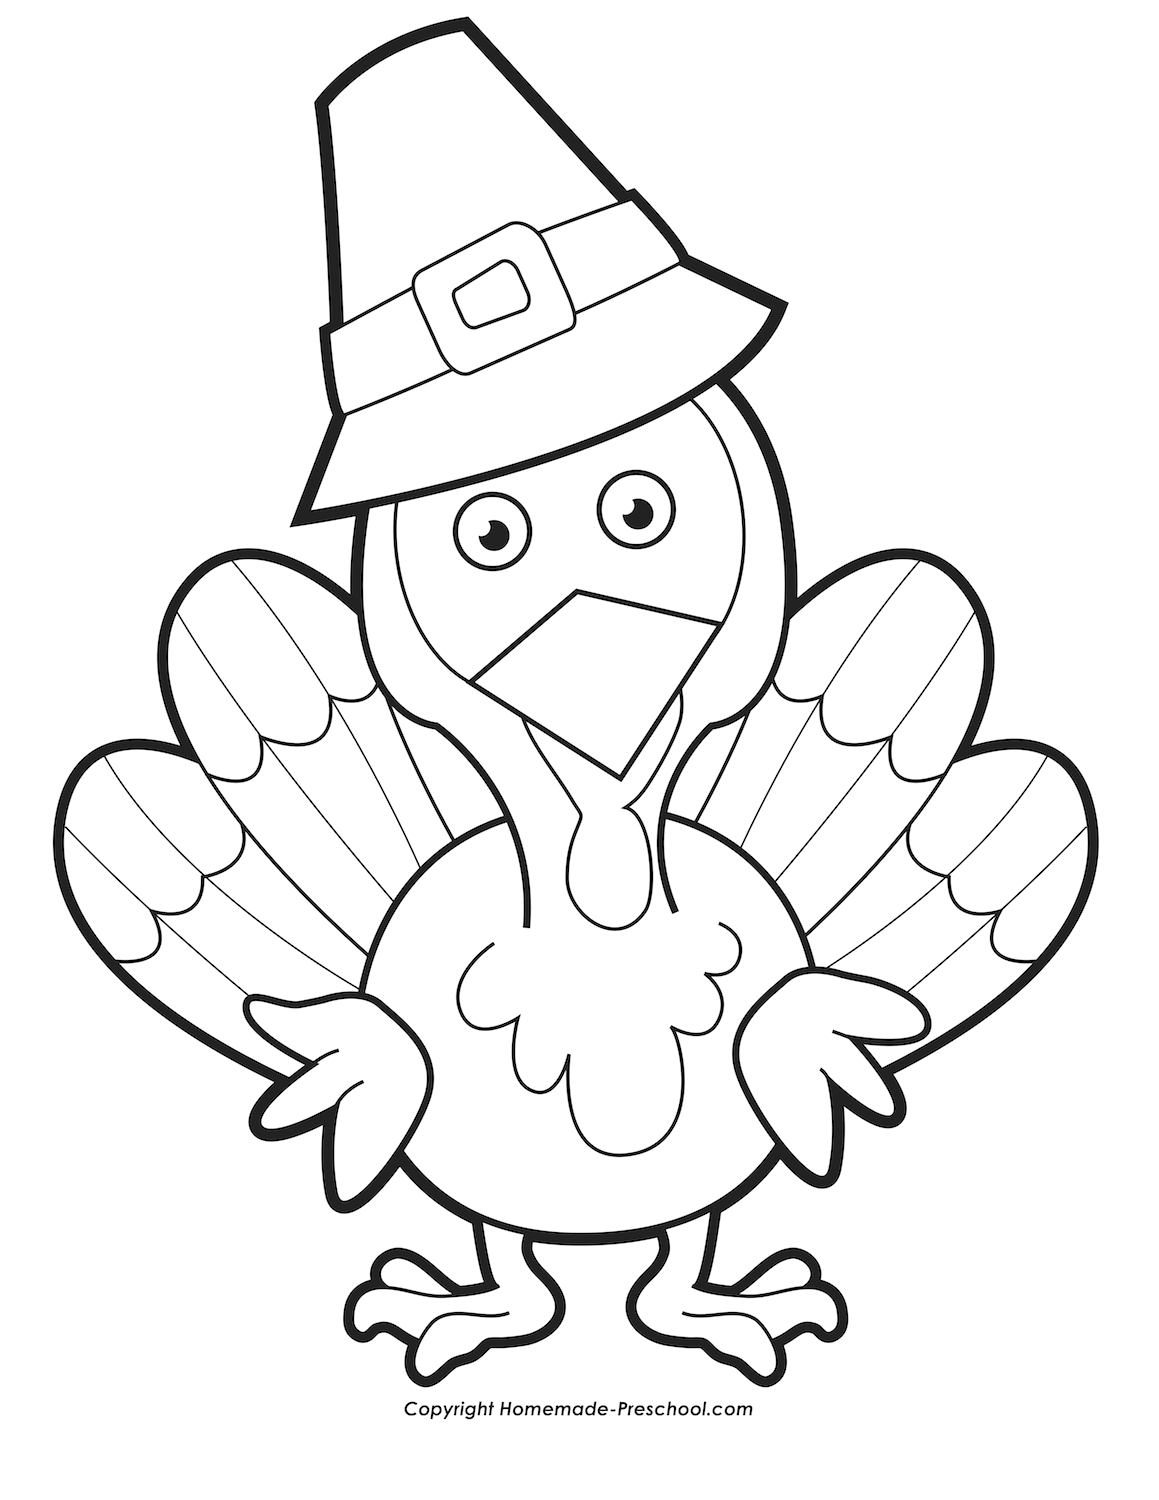 Free Printable Thanksgiving Coloring Pages for Kids Thanksgiving Coloring Pages